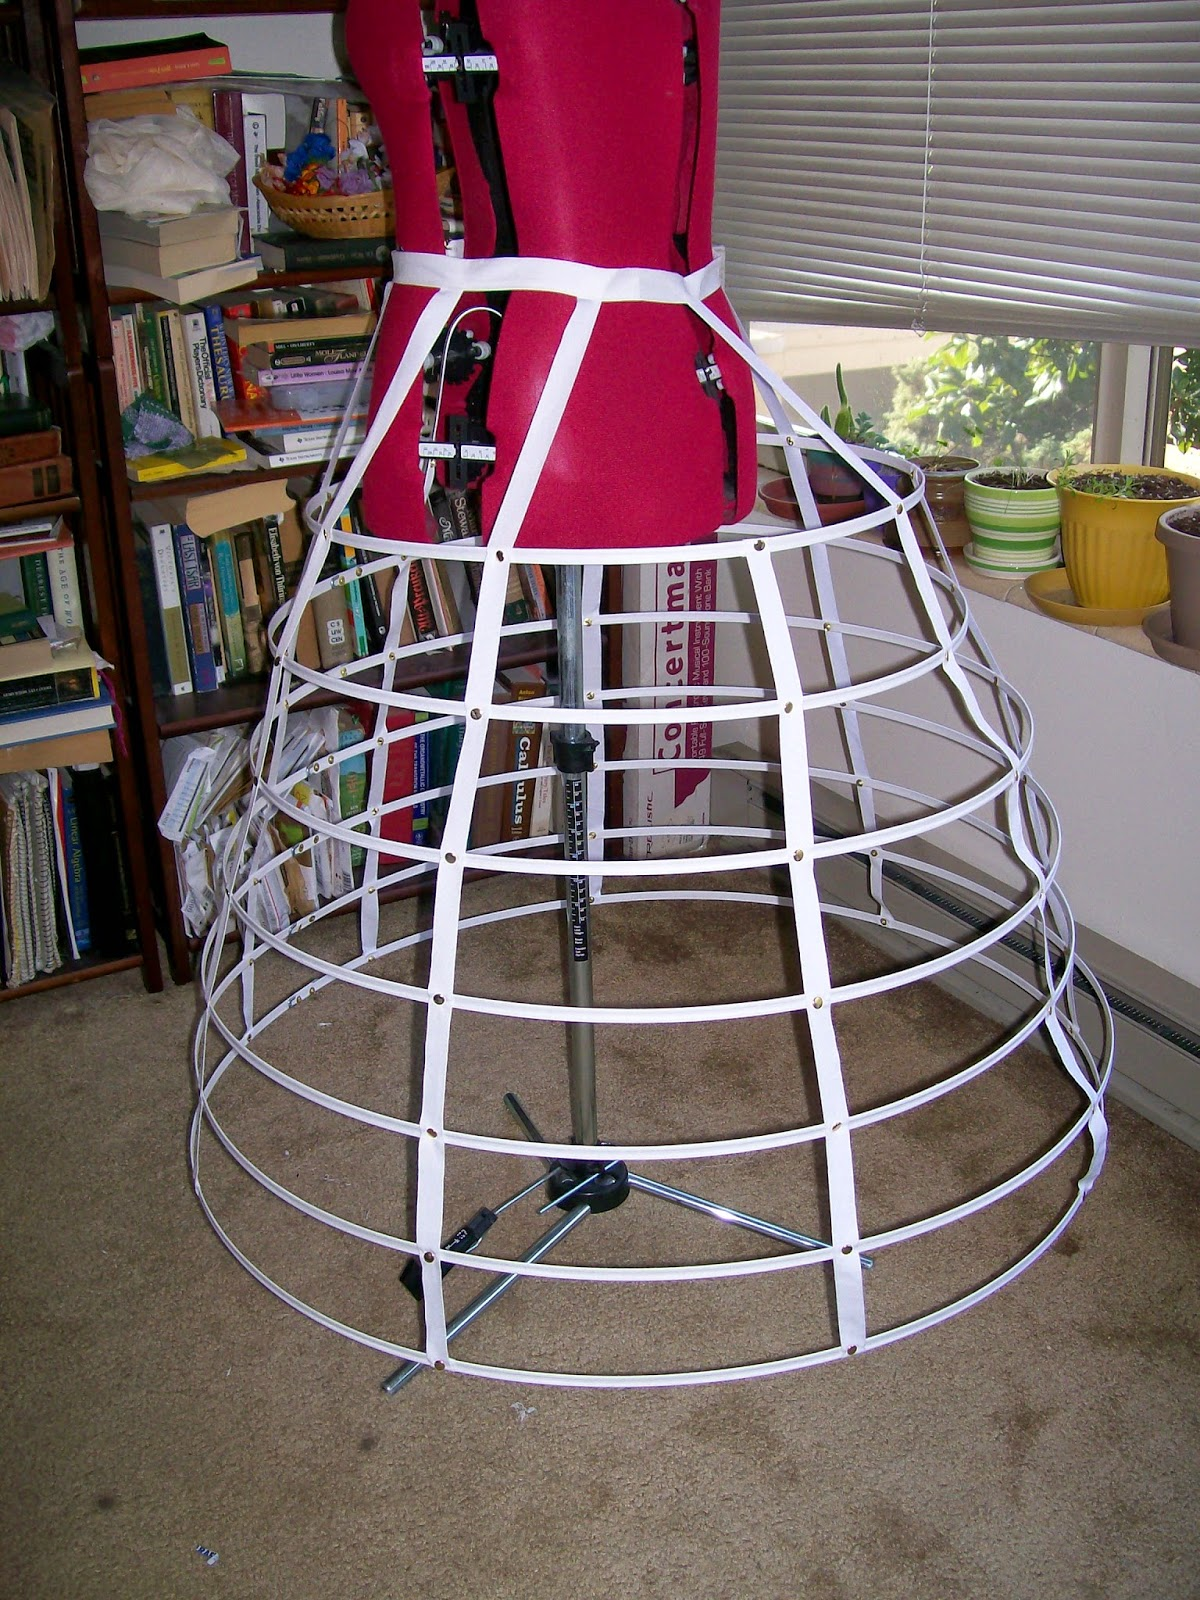 Back view of cage crinoline from Kayfig kit.